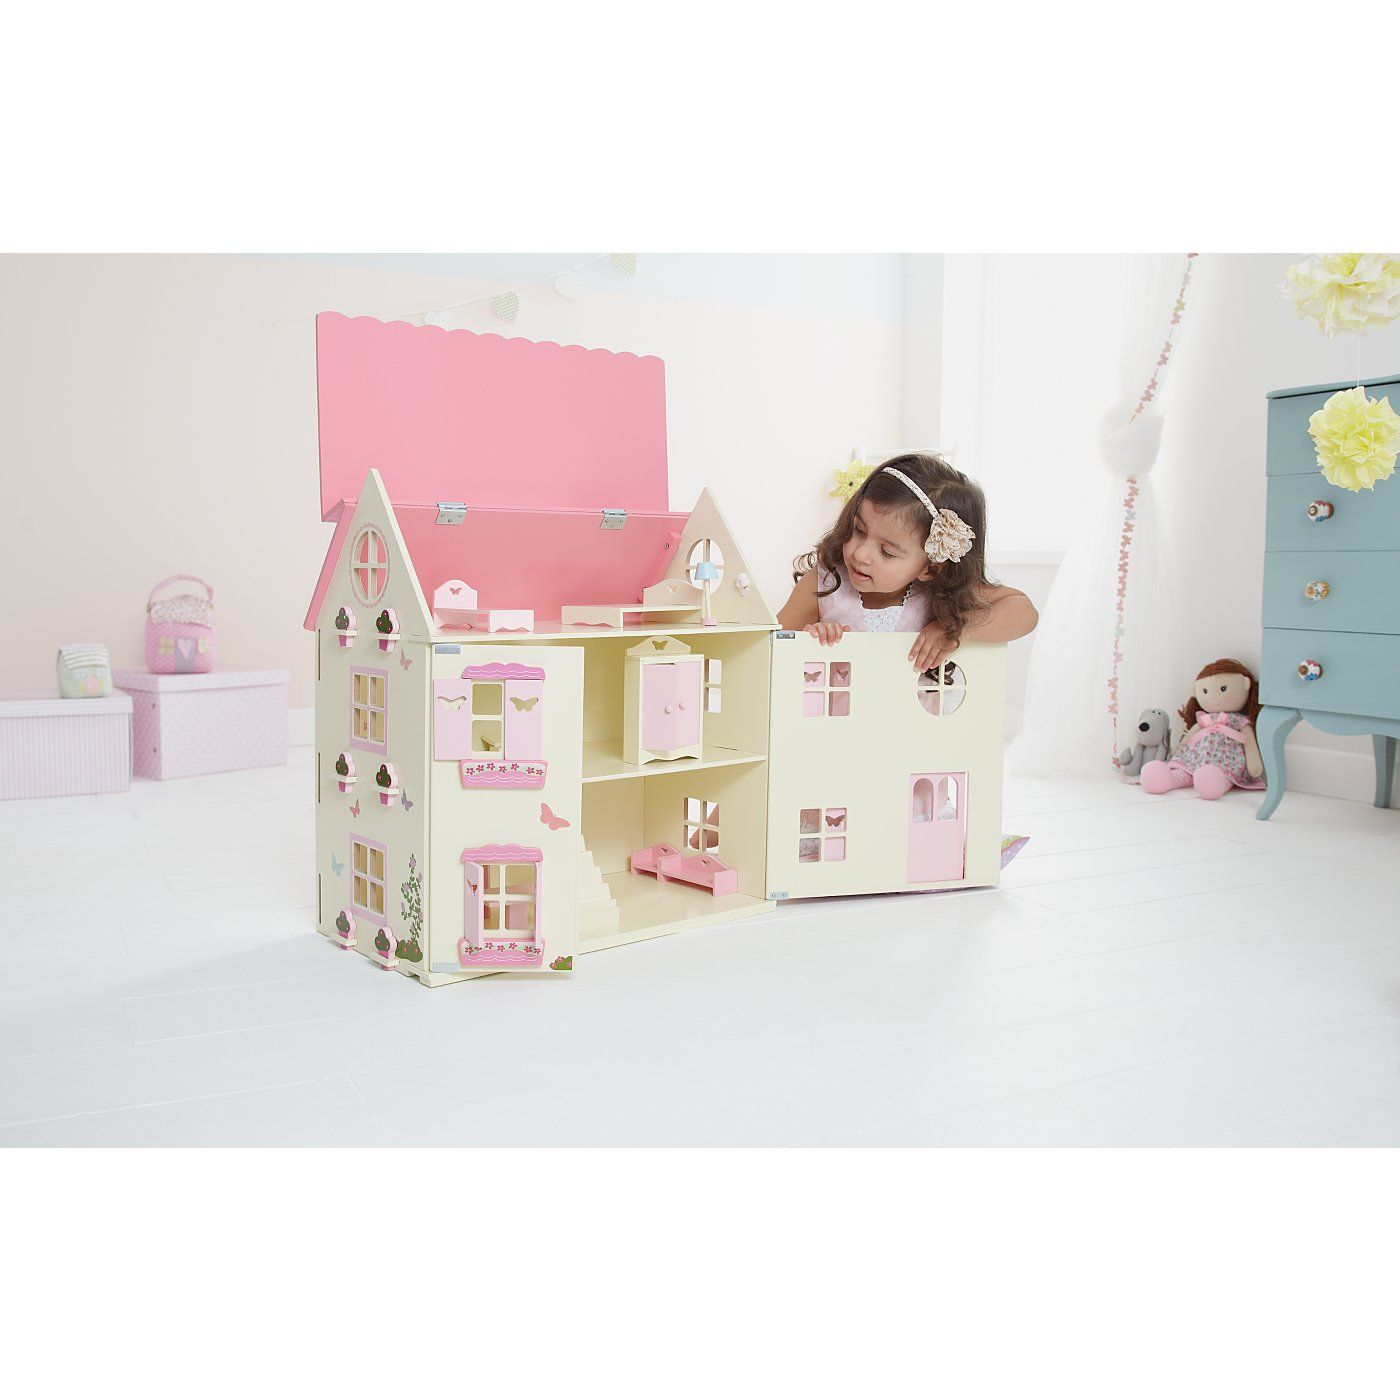 George Home Wooden Dolls House Wooden Toys Asda Direct